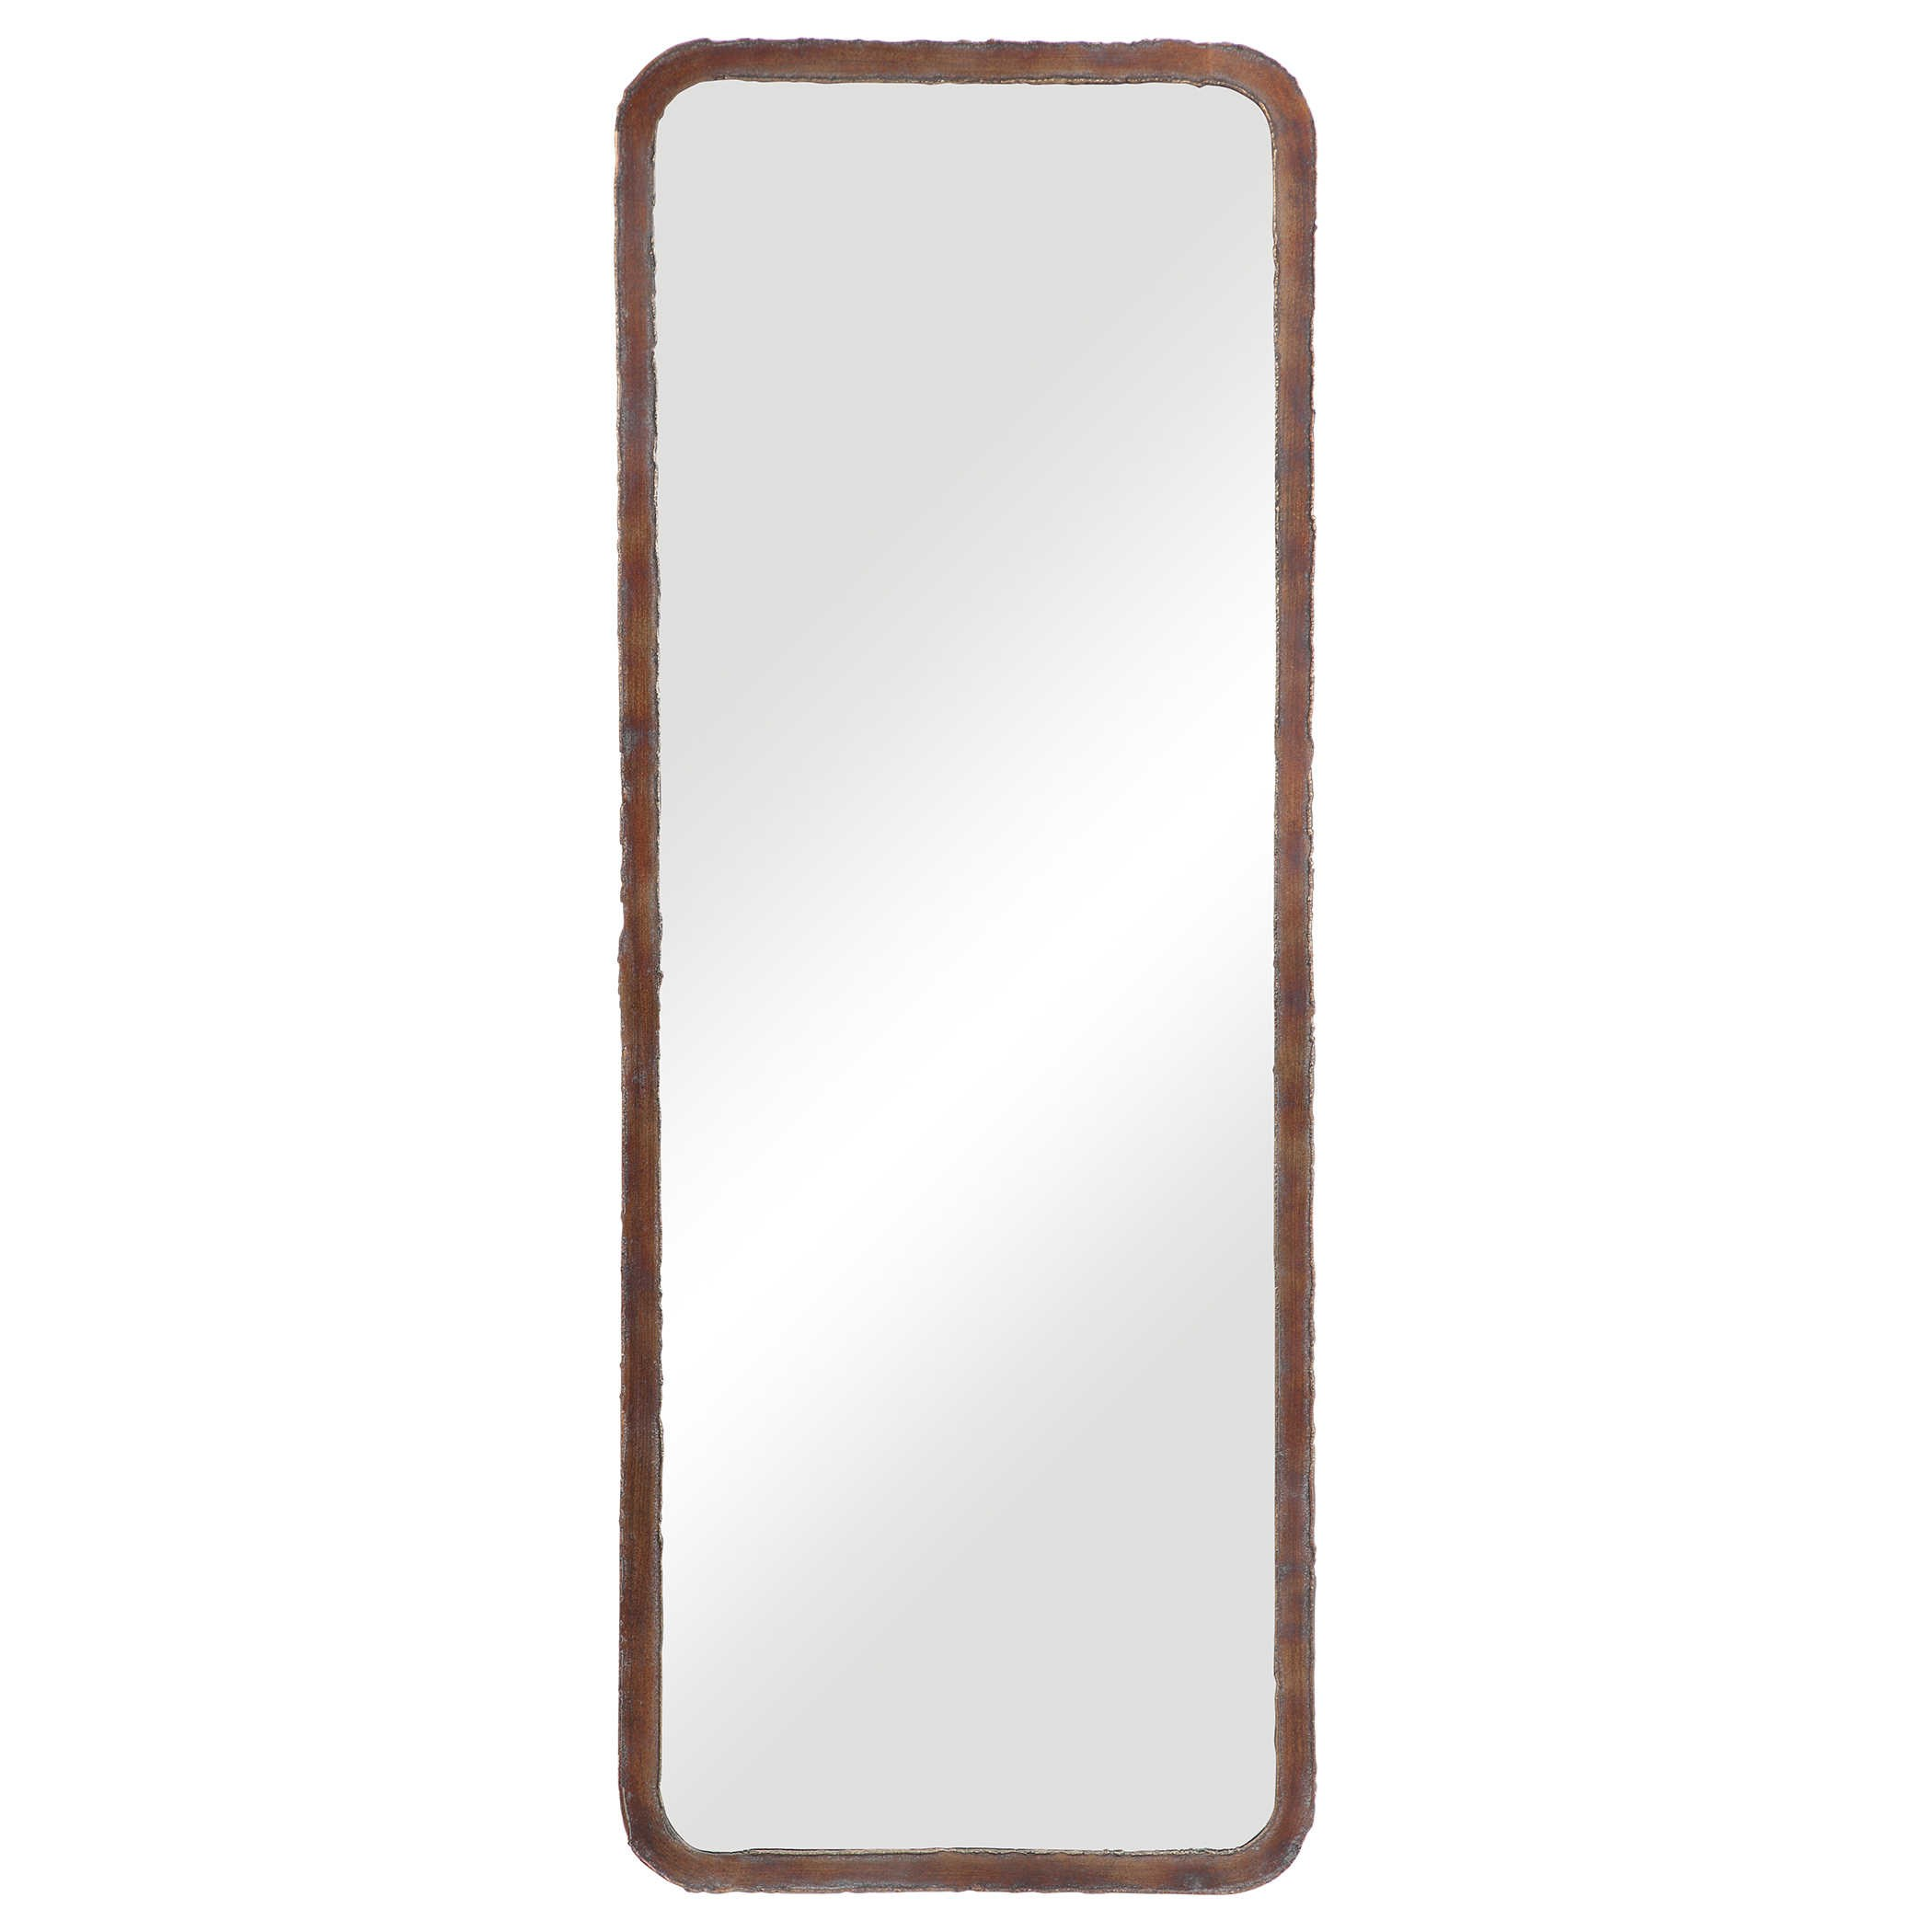 Gould Oversized Mirror